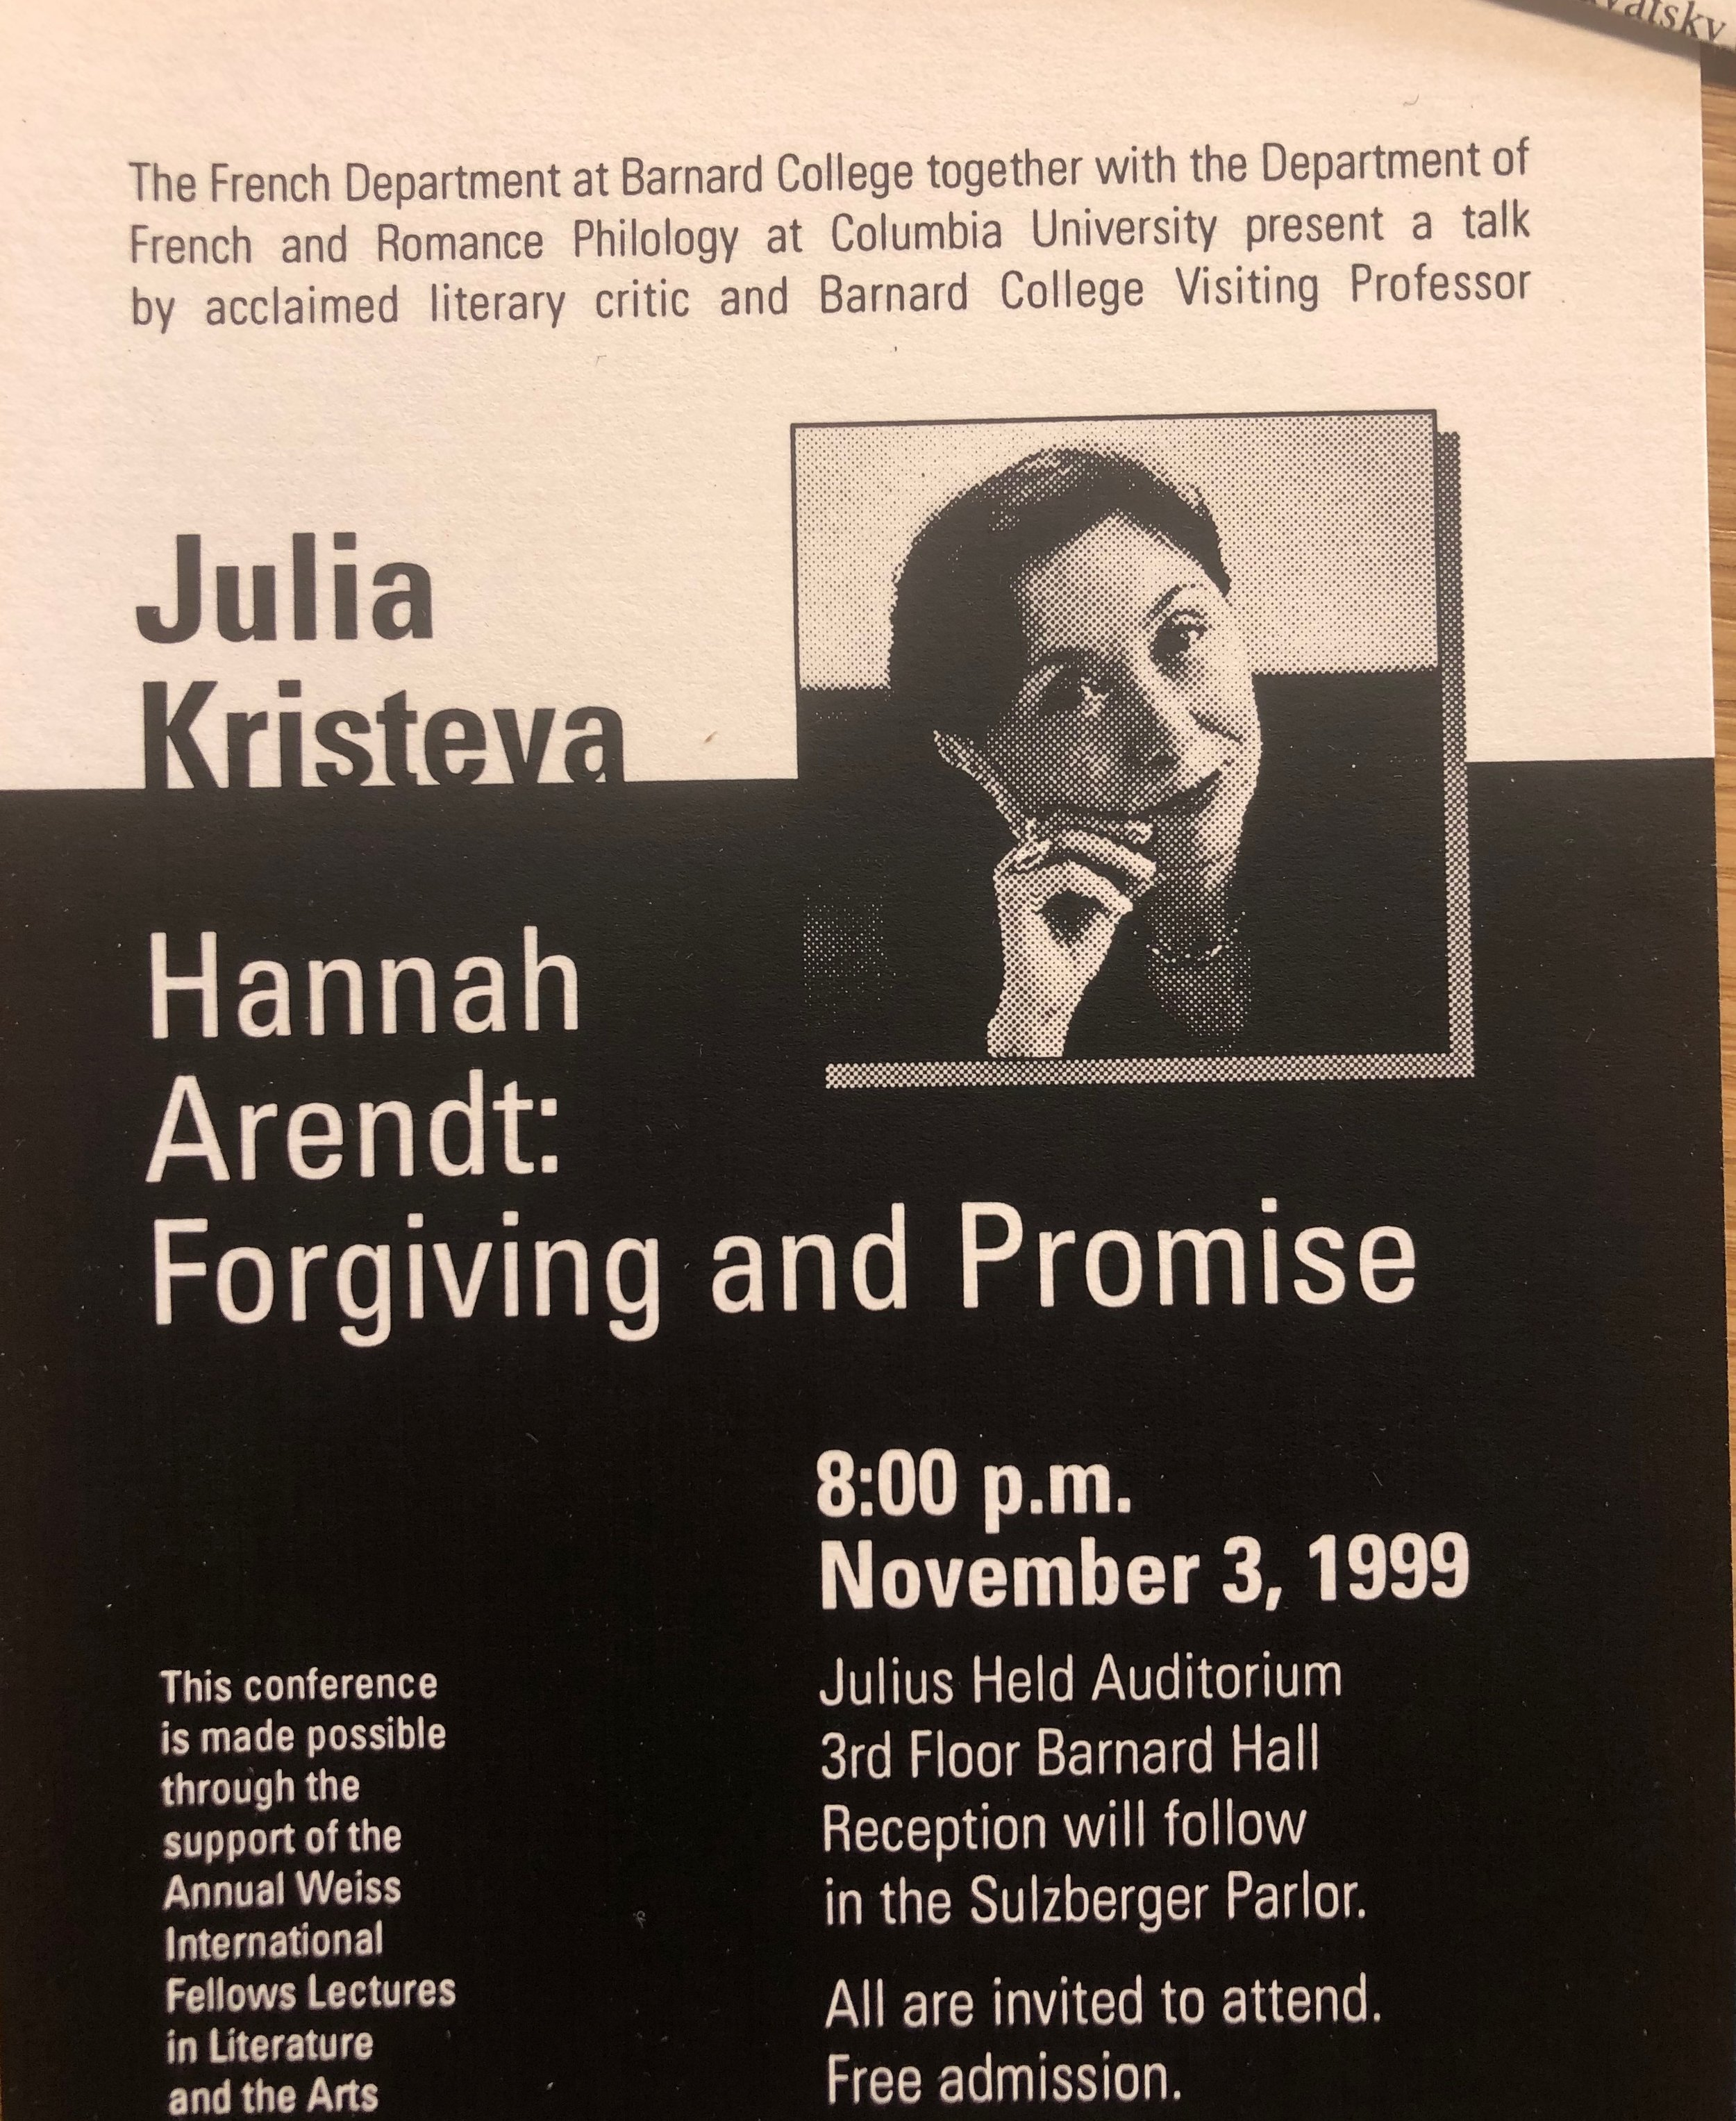 BC13.23_1_F3 - French Dept Julia Kristeva 1999.jpg